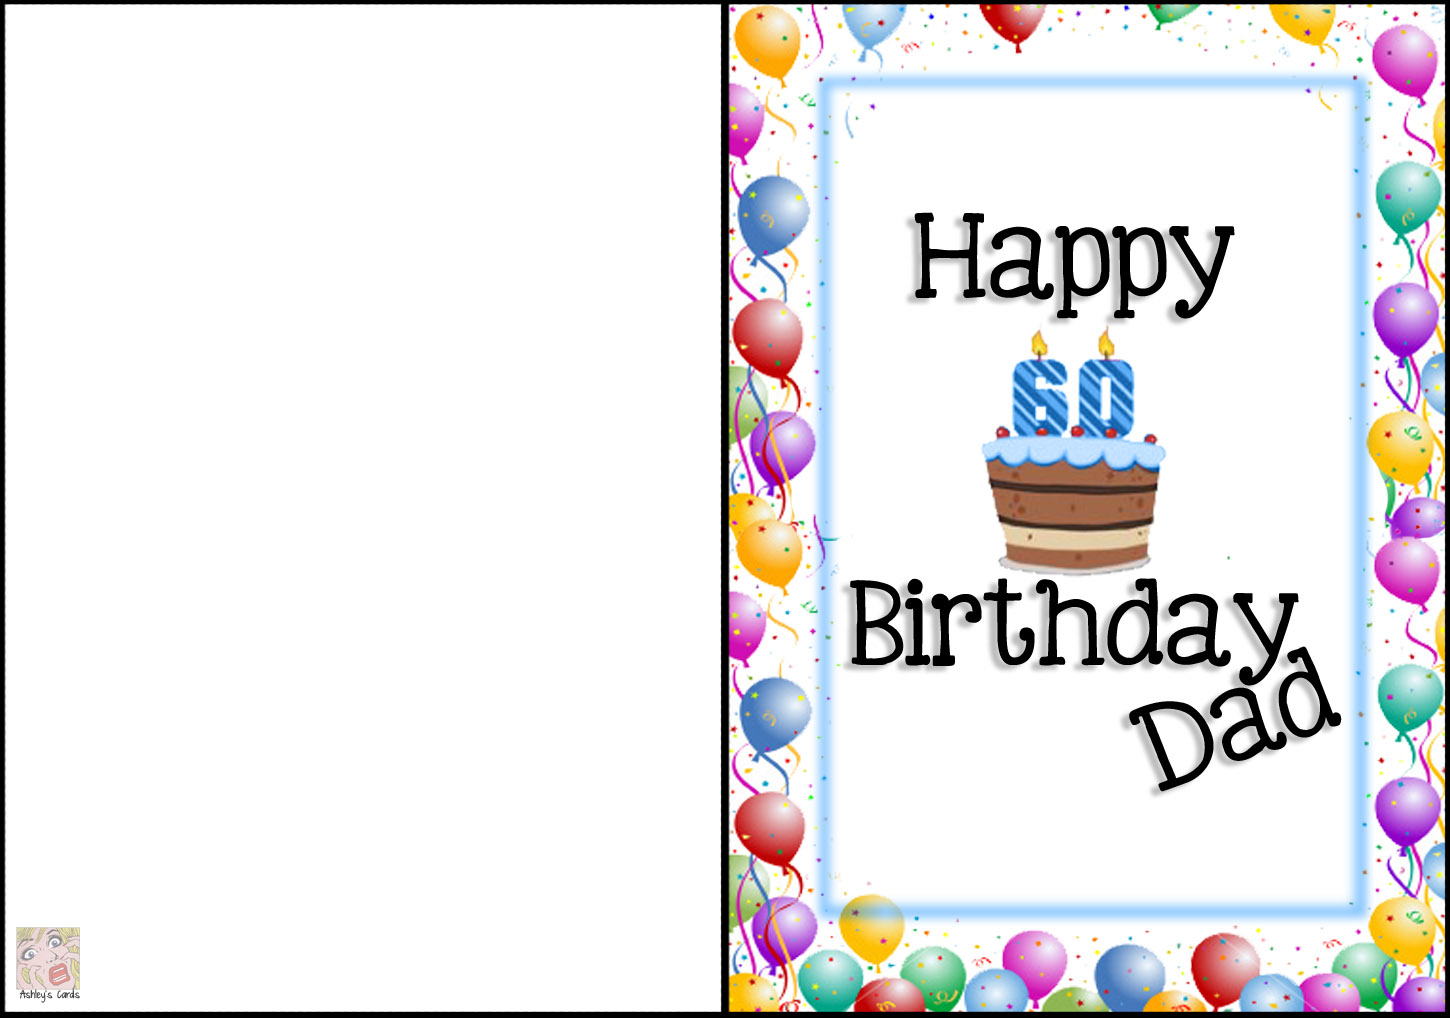 Free Printable Birthday Cards For Dad - Printable Cards - Free Printable Happy Birthday Cards Online